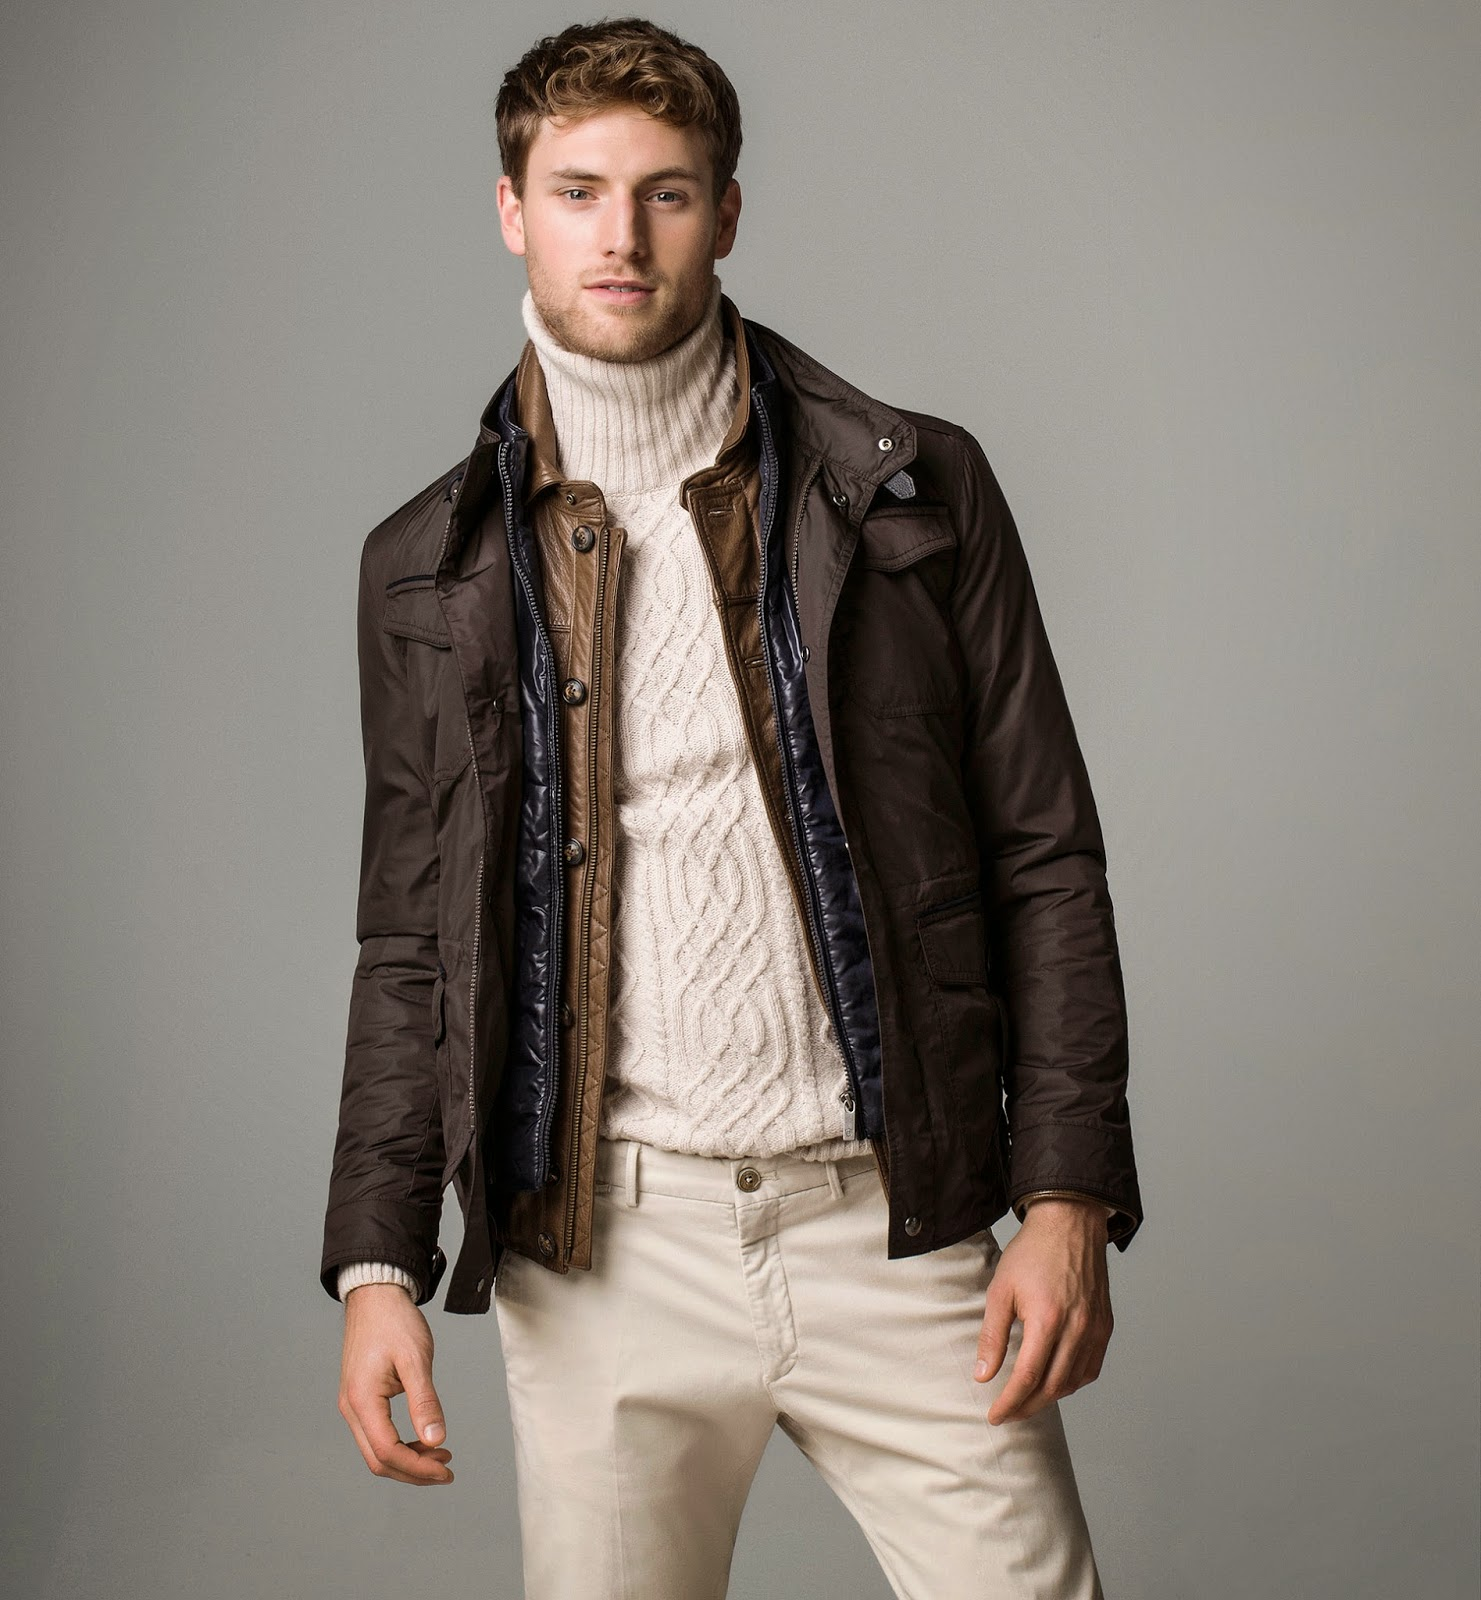 http://www.massimodutti.com/us/en/men/new/brown-field-jacket-c890512p4698009.html?colorId=700